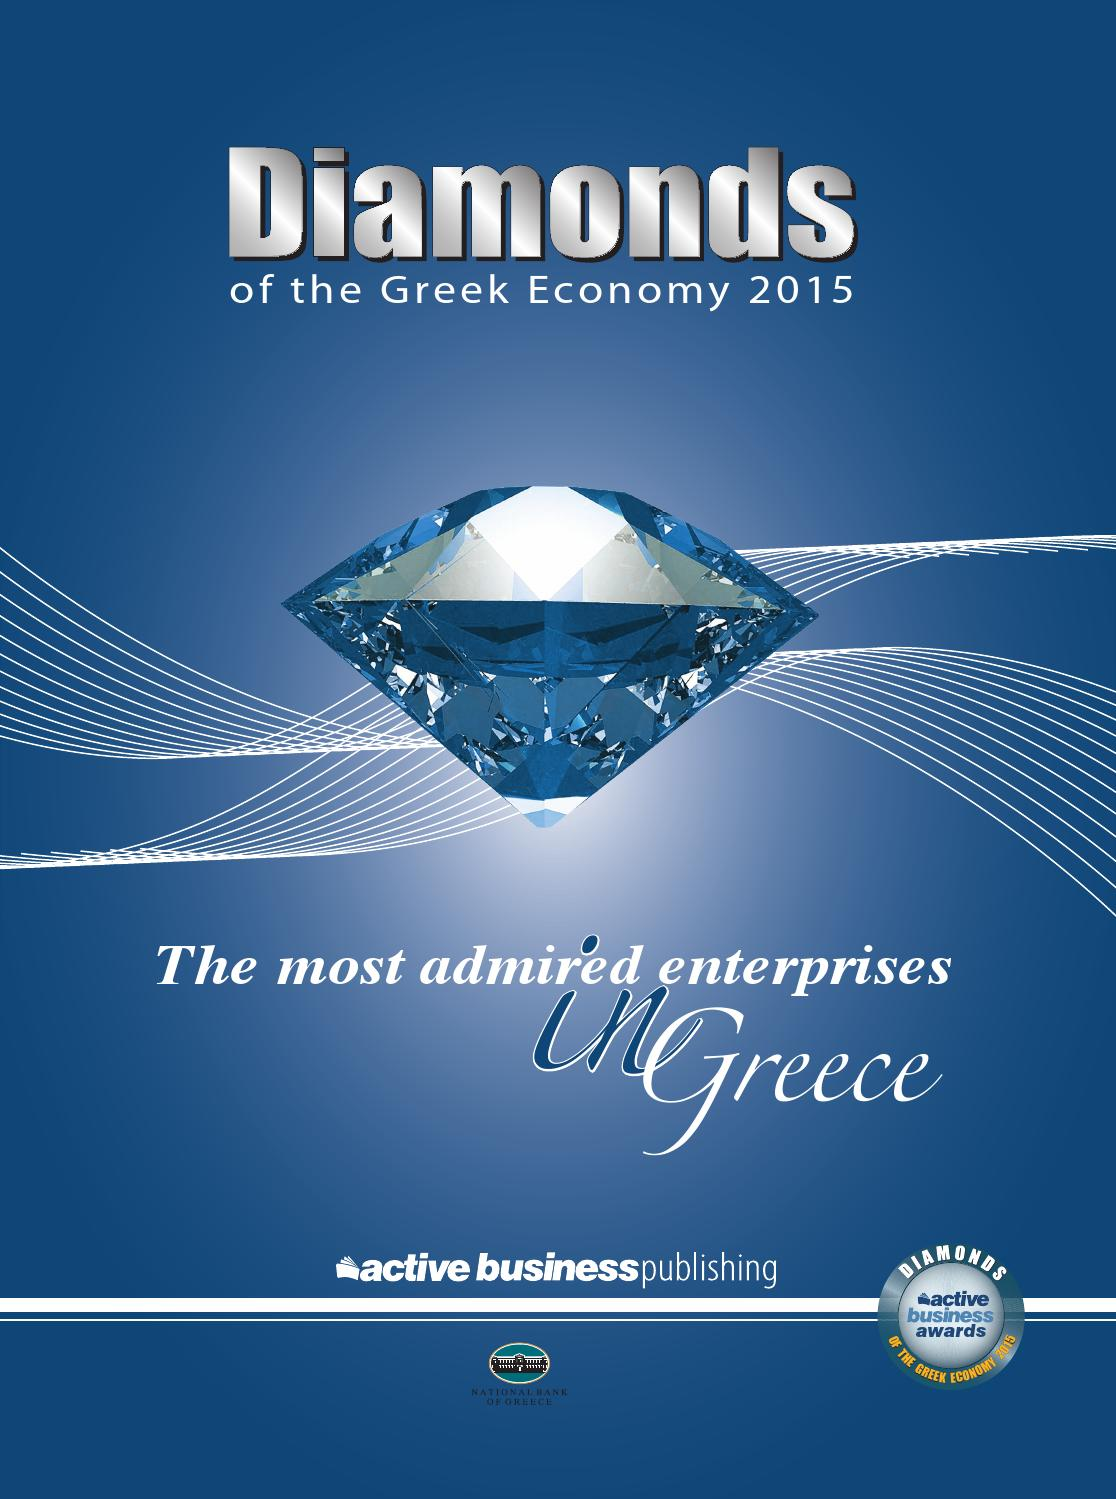 Diamonds2 of the Greek Economy 2015 by NewTimes - issuu 1f0875a0188